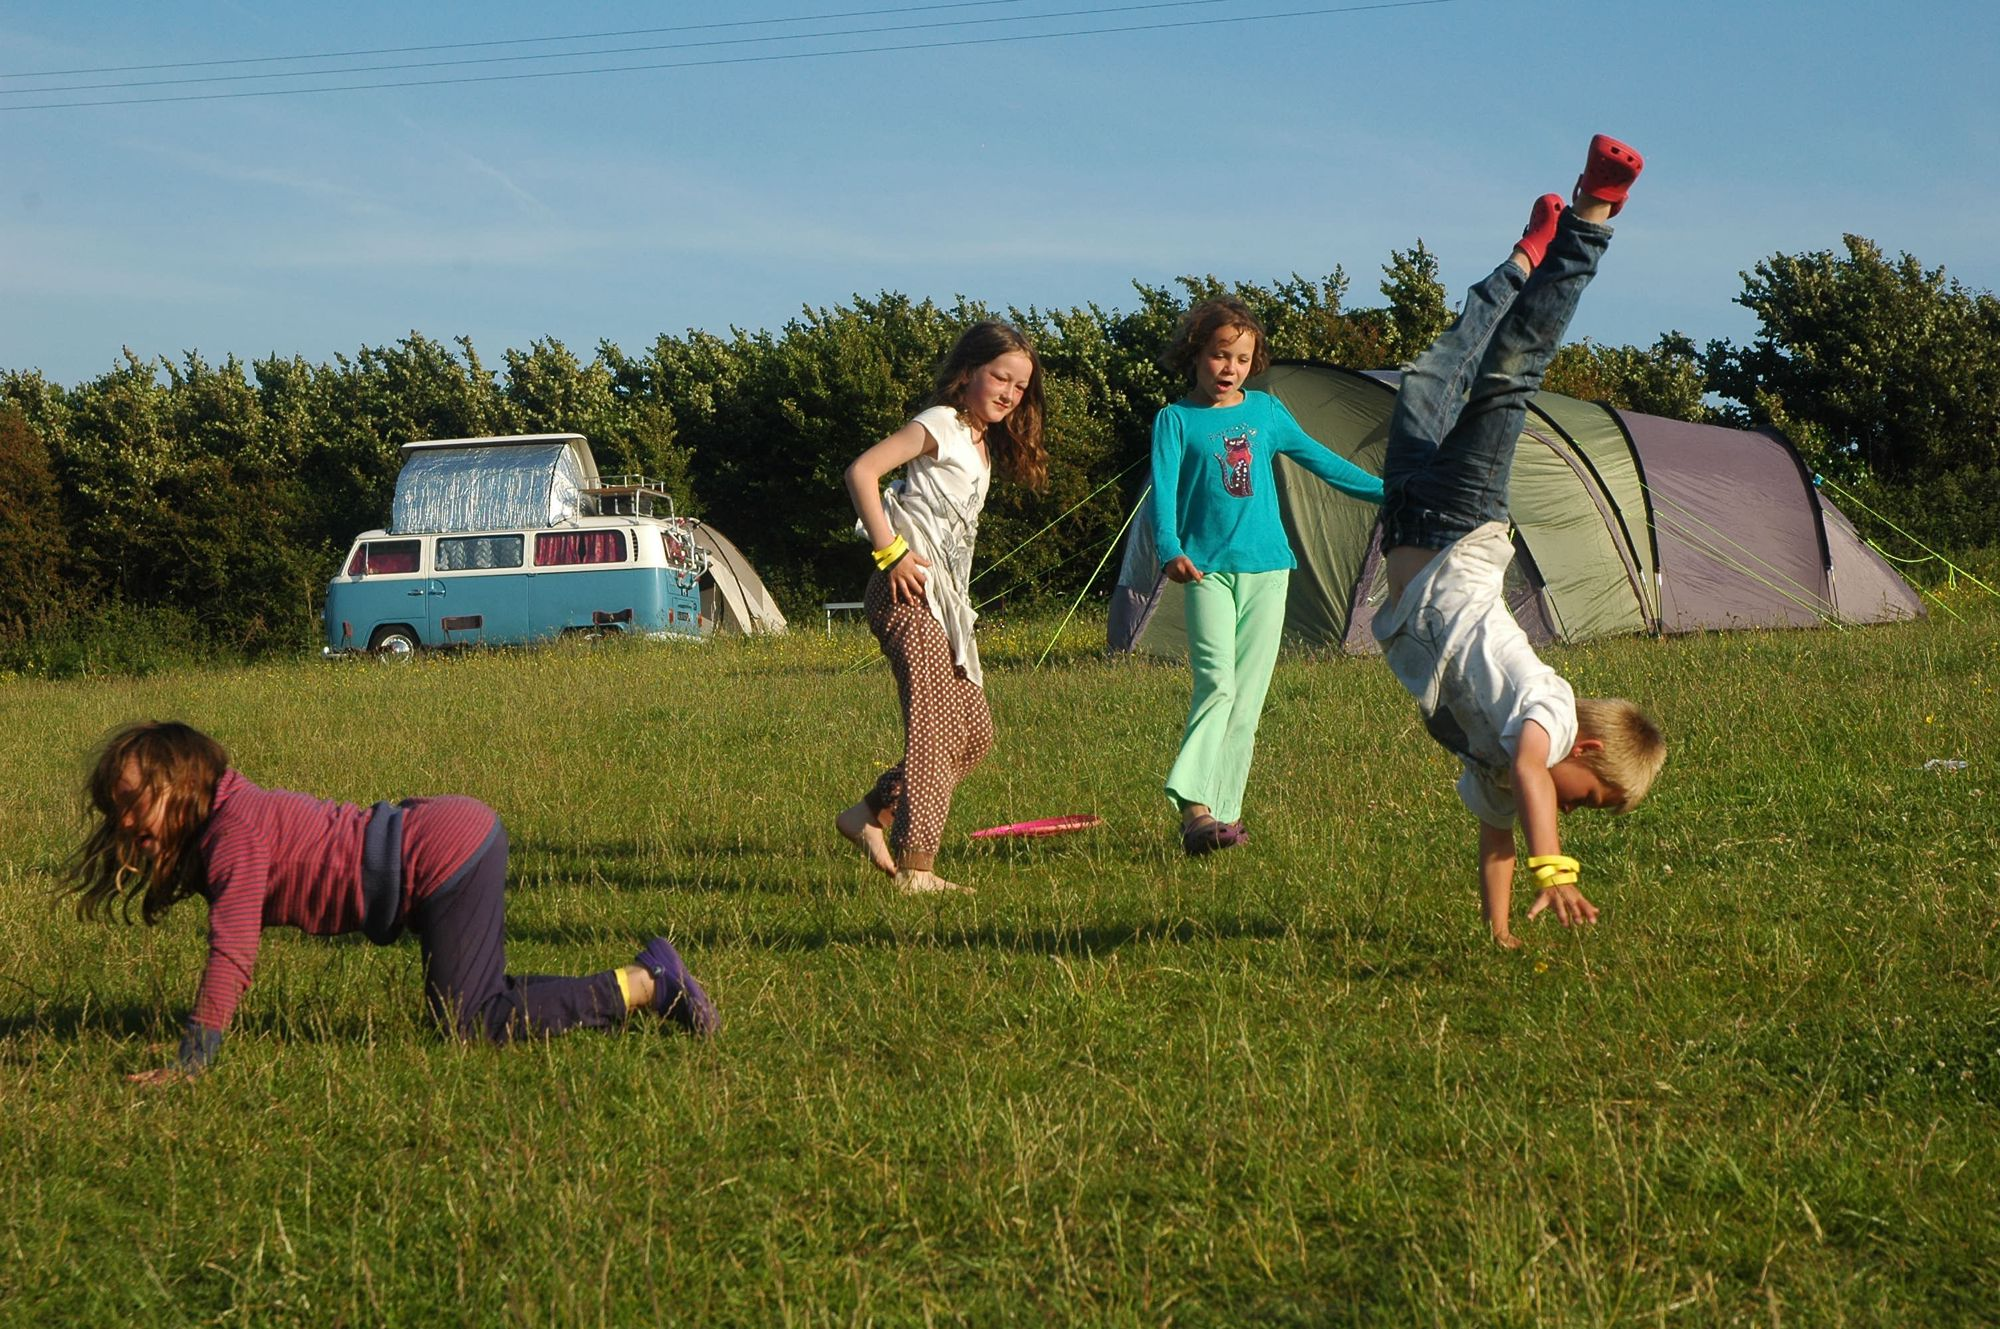 'Happy eco camping' brags the tagline. And happy is just what you'll feel here if you're eco-minded and wild about camping. Just a short walk from the kiss-me-quick seaside at Bude, at Cerenety tent life is all about being green and taking it easy.